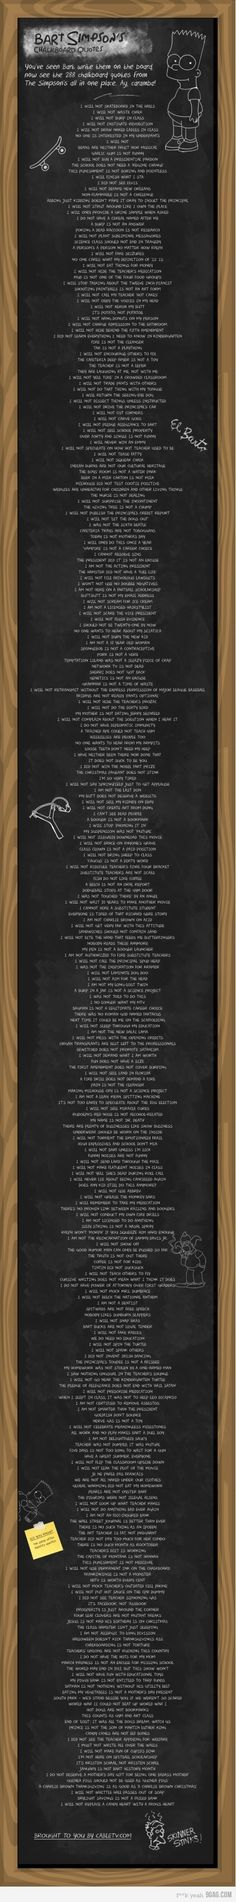 "Every Bart Simpson Chalkboard Quote. In honor of ""The Simpsons"" episode this weekend, here is every single sentence Bart has ever written on Mrs. The Simpsons, Simpsons Quotes, Bart Simpson Chalkboard, Cinema, Chalkboard Quotes, Chalkboard Writing, Just In Case, Funny Quotes, Funny Humor"